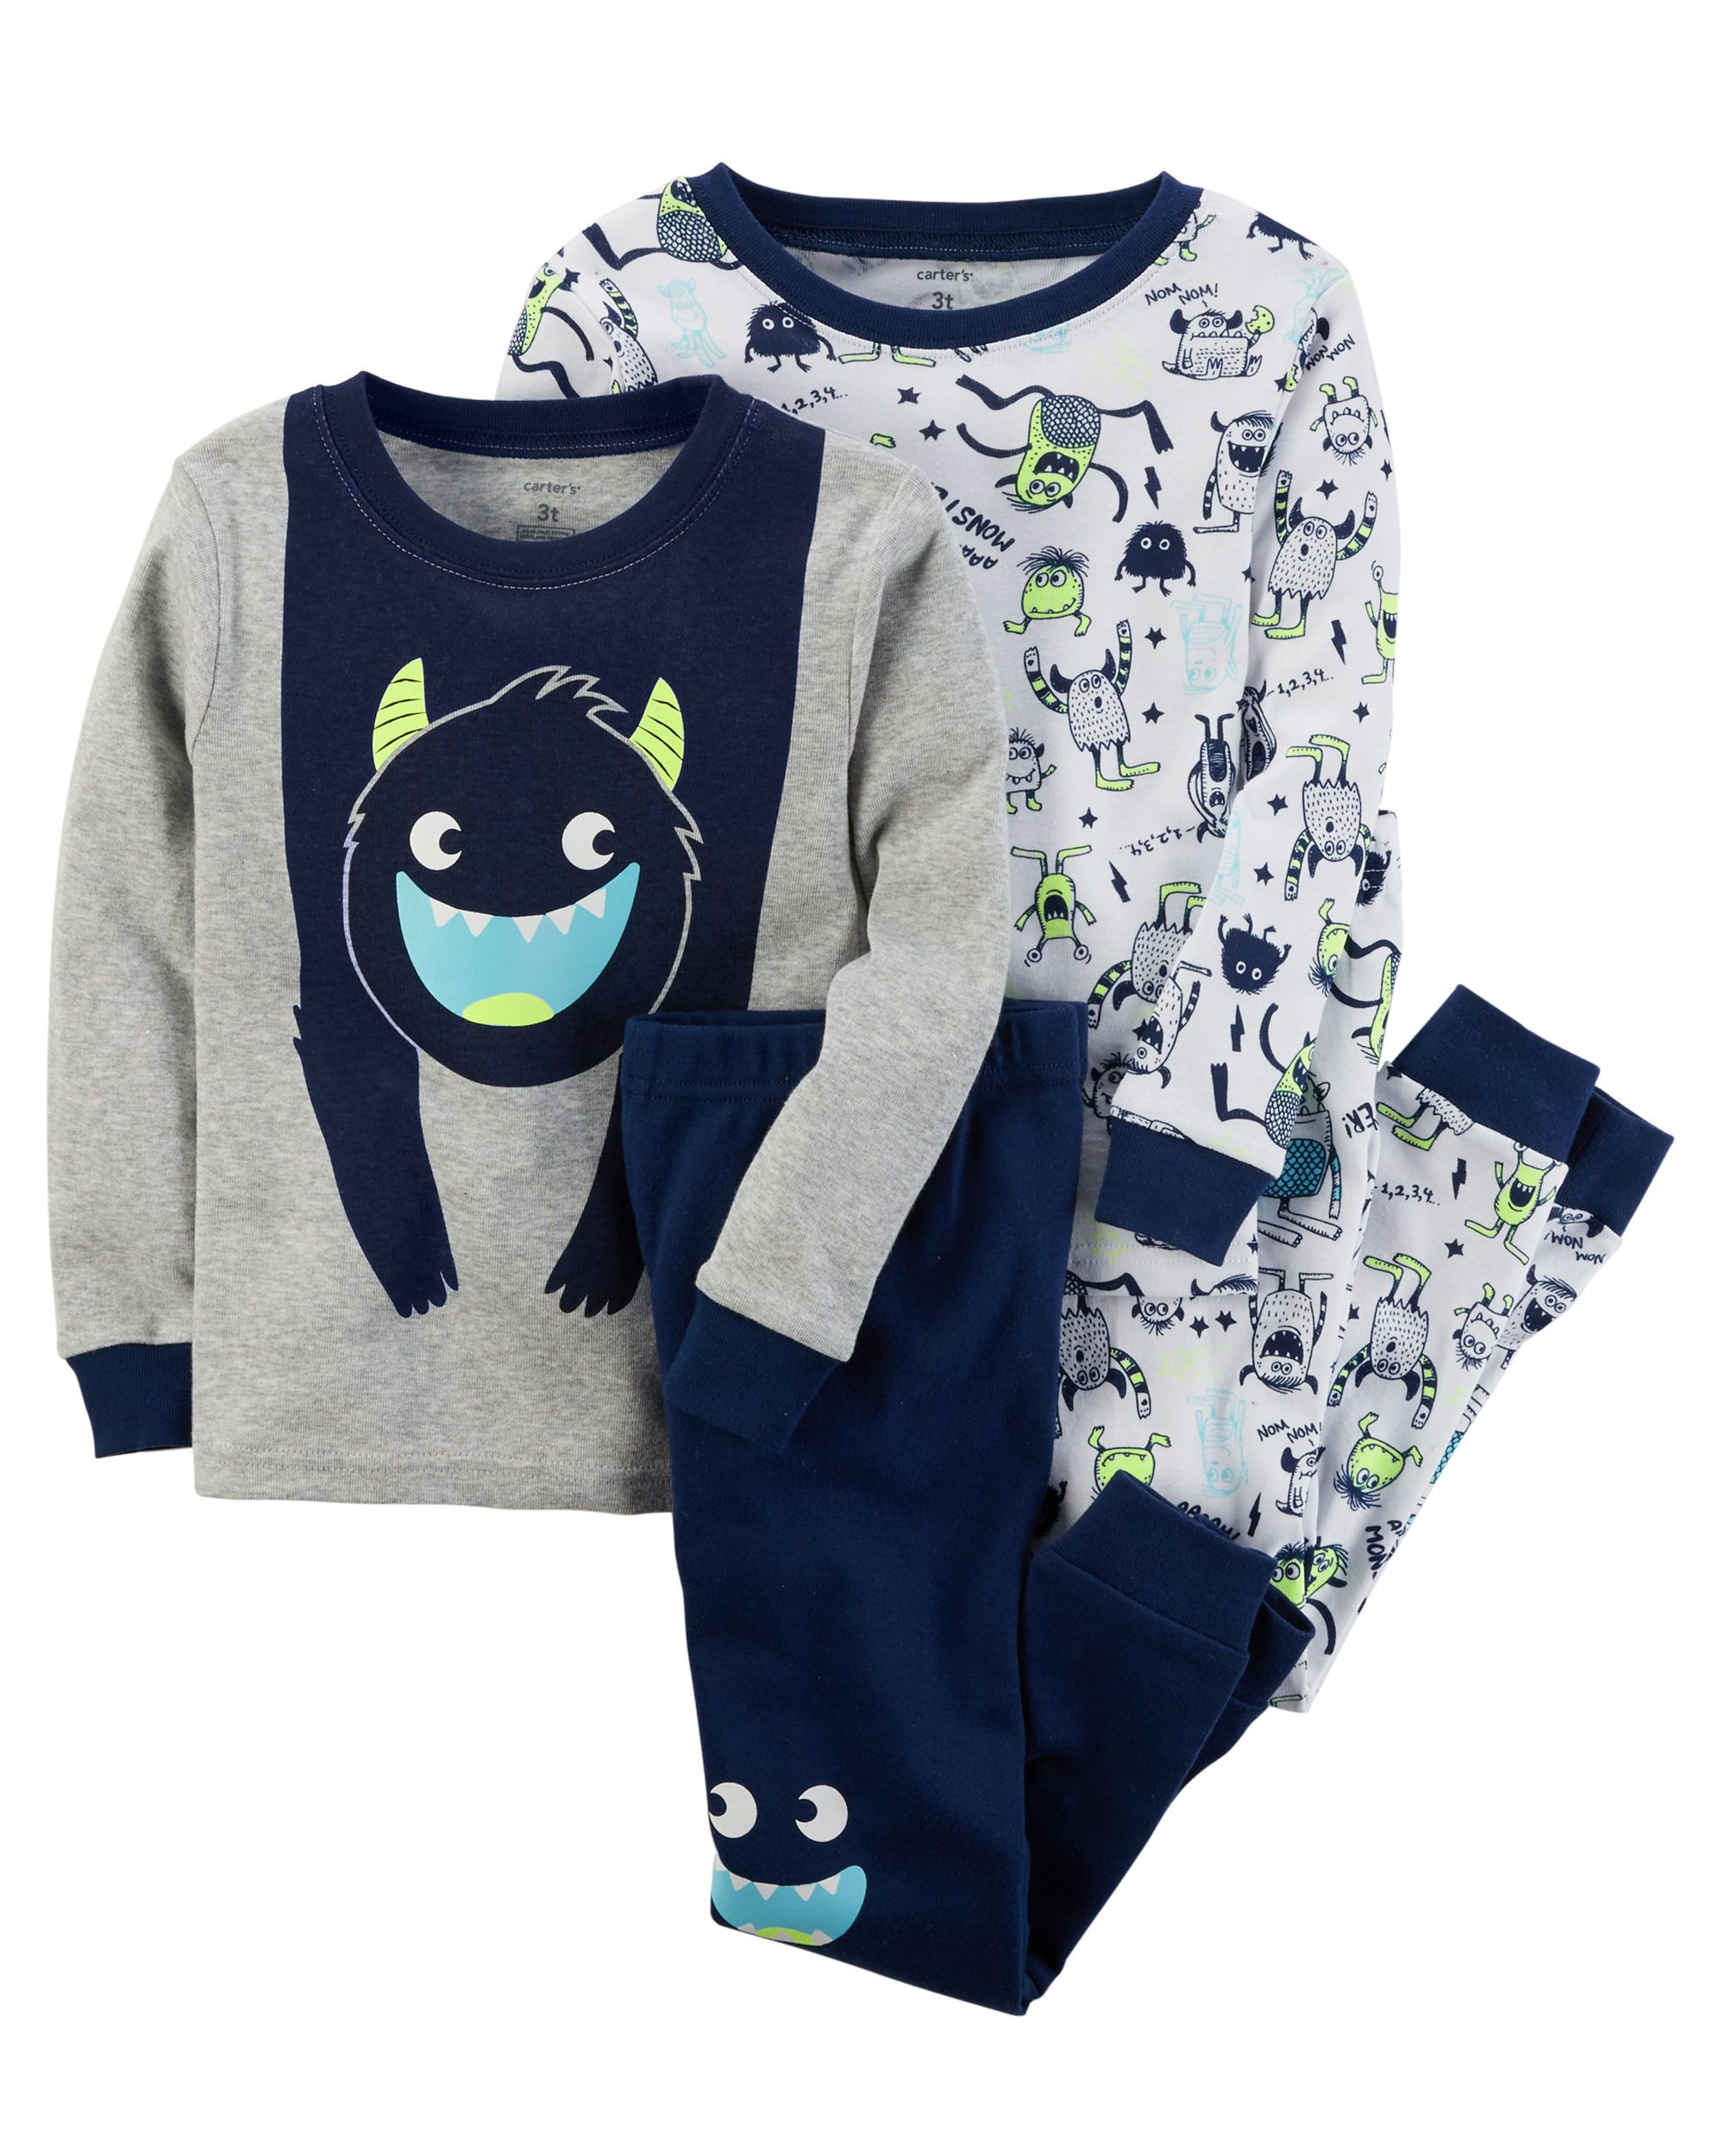 e75ae60b7c69 xh17 Kid Boy 4-Piece Glow-In-The-Dark Snug Fit Cotton PJs from ...